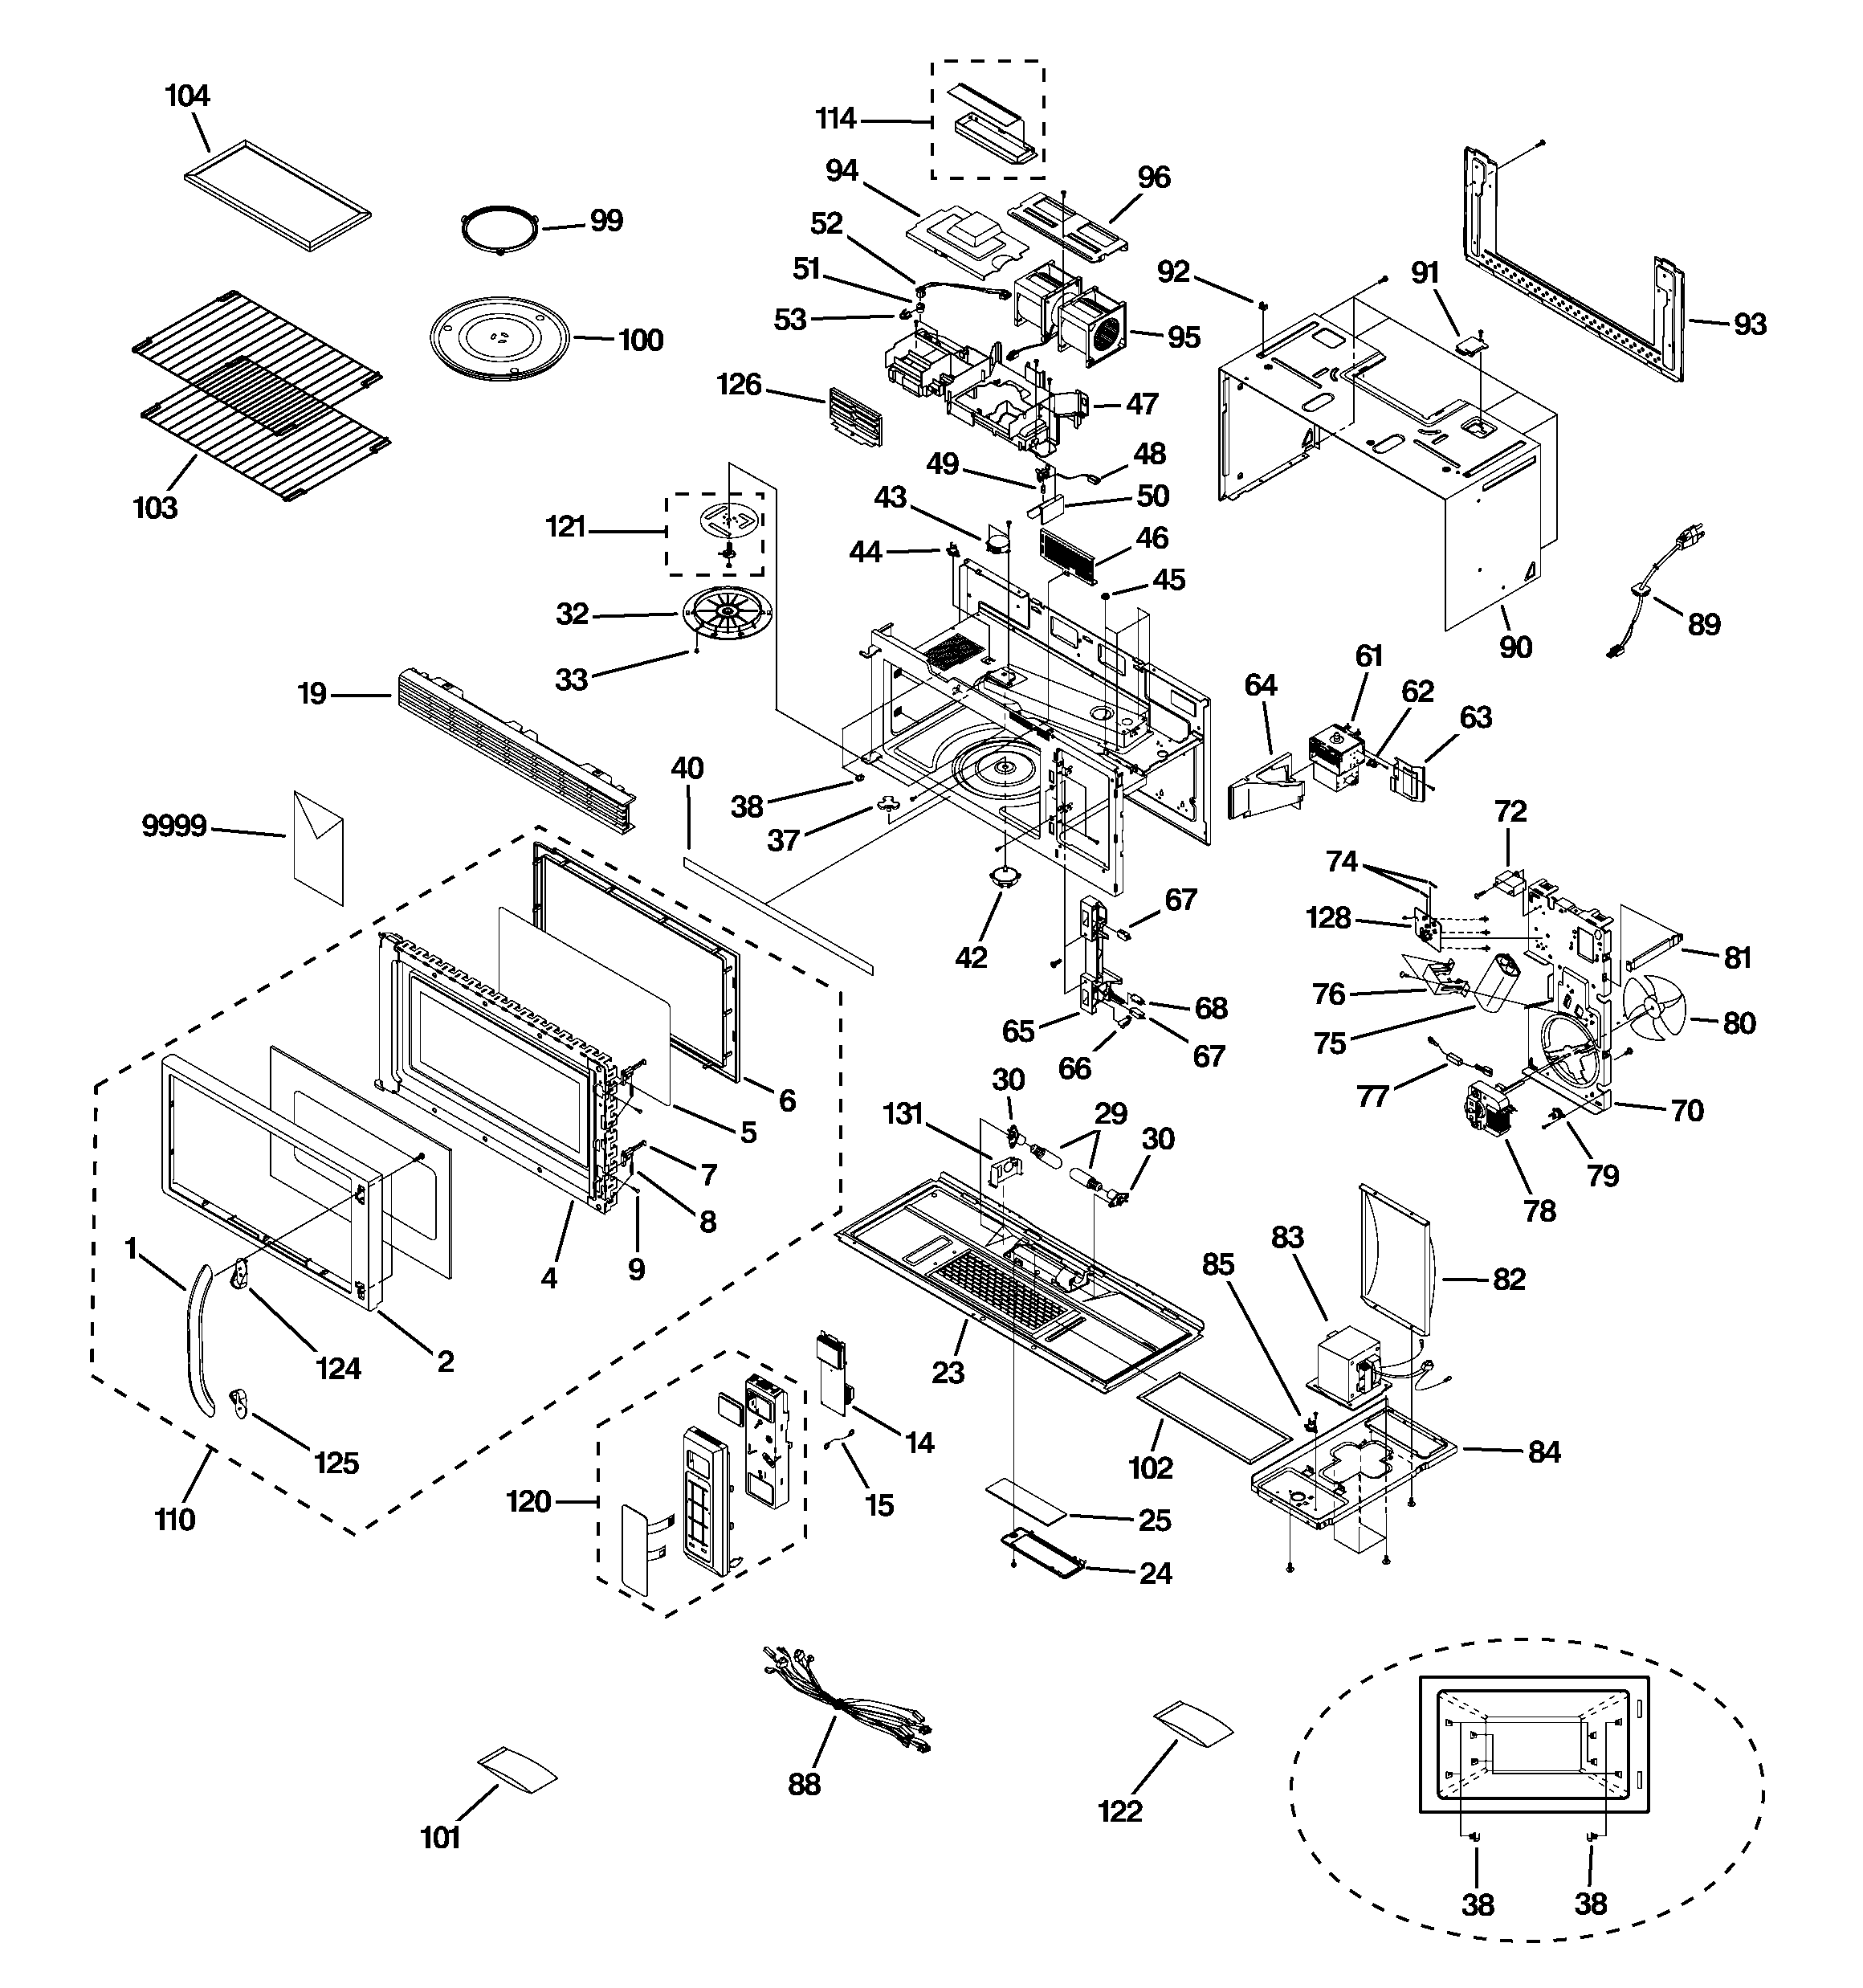 G0604228 00001?resize\\\\\\\\\\\\\\\\\\\\\\\\\\\\\\\=665%2C709 wiring diagram for range hood fan nautilus range hood wiring  at gsmx.co